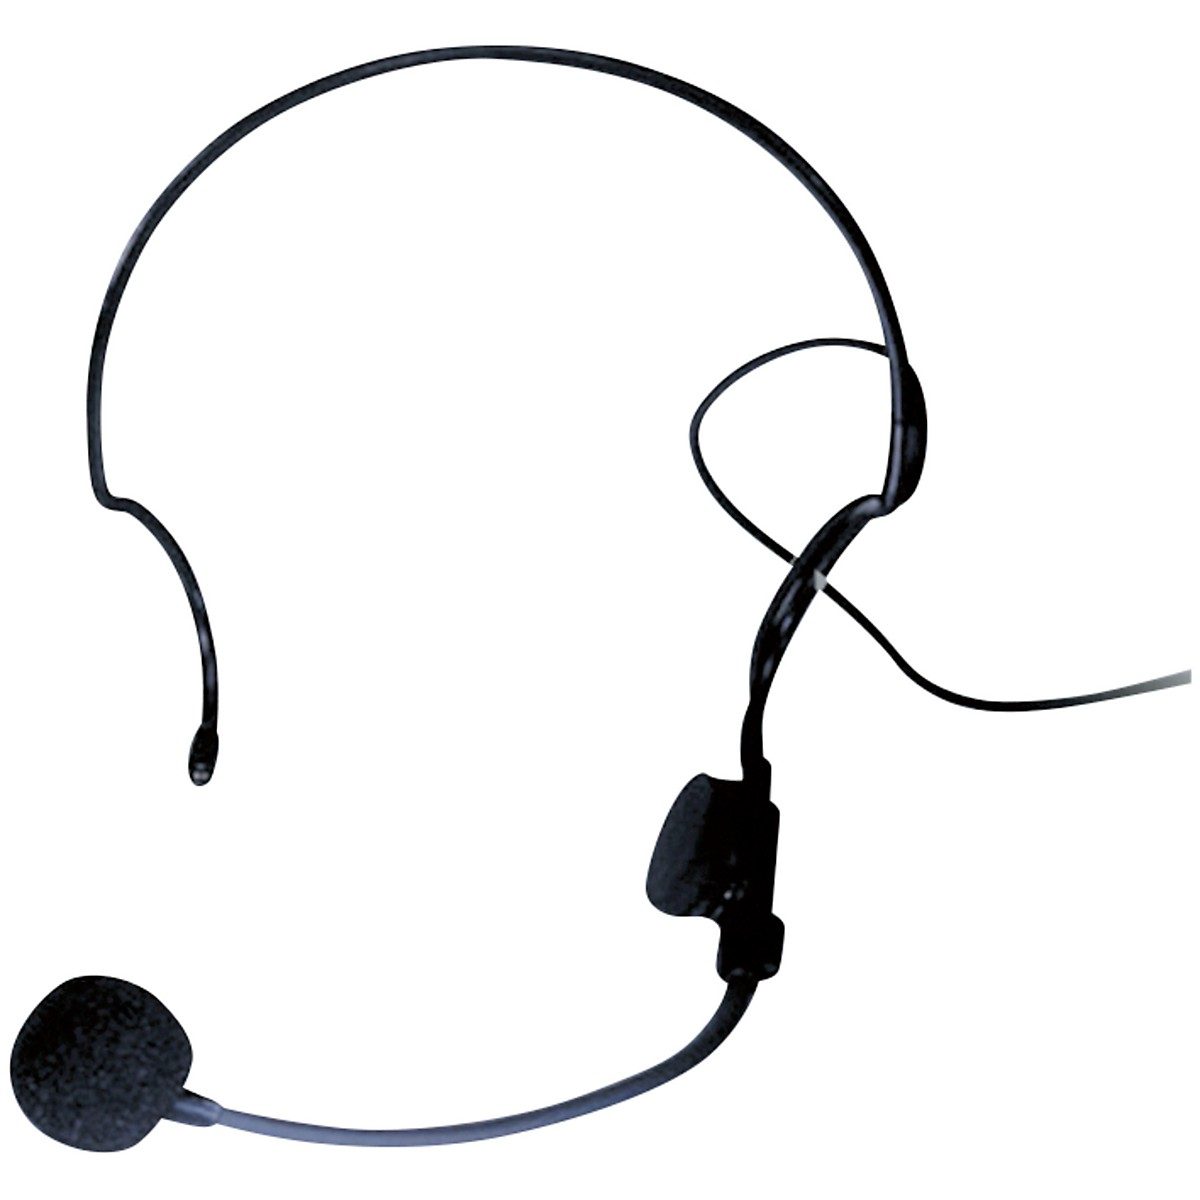 Electro-Voice HM2 Headworn Unidirectional Condenser Vocal Mic With a TA4F Connector